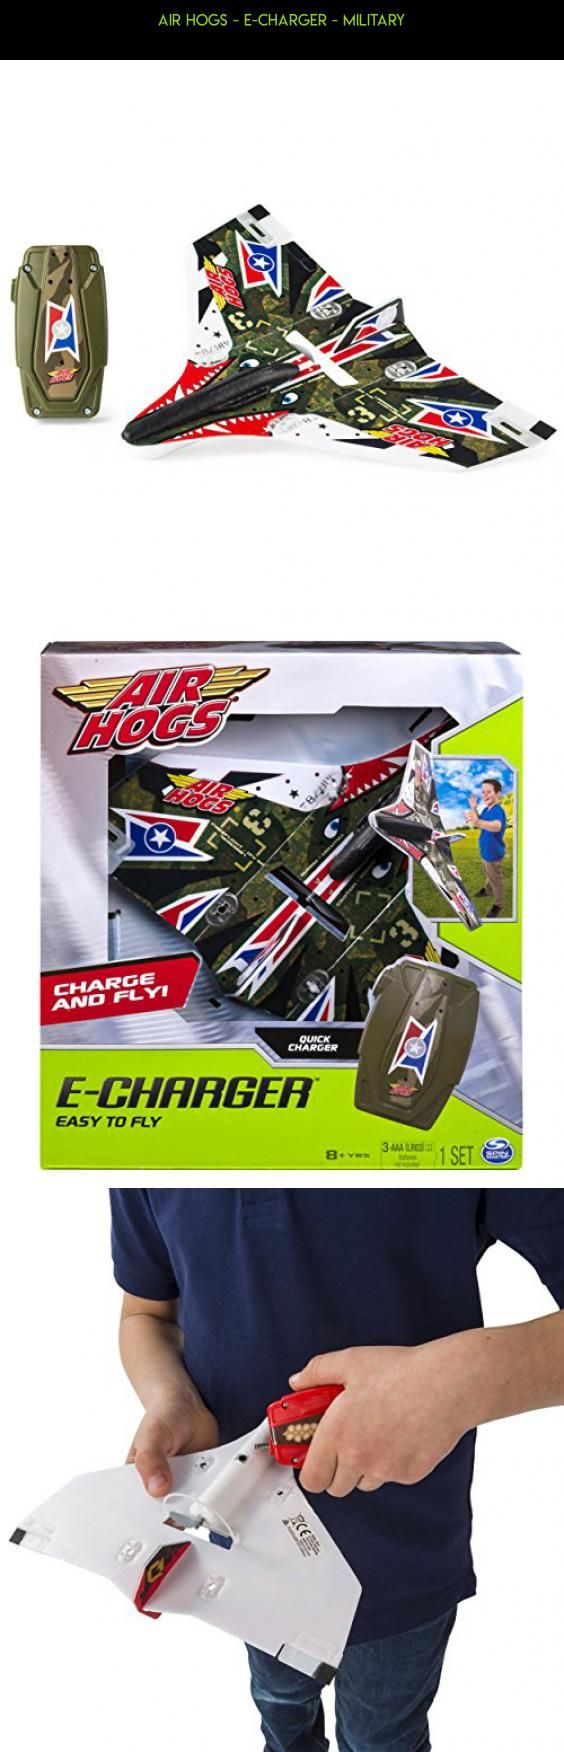 Air Hogs - E-Charger - Military #plans #fpv #tech #technology #camera #rc #parts #hogs #products #gadgets #plane #racing #air #drone #kit #shopping